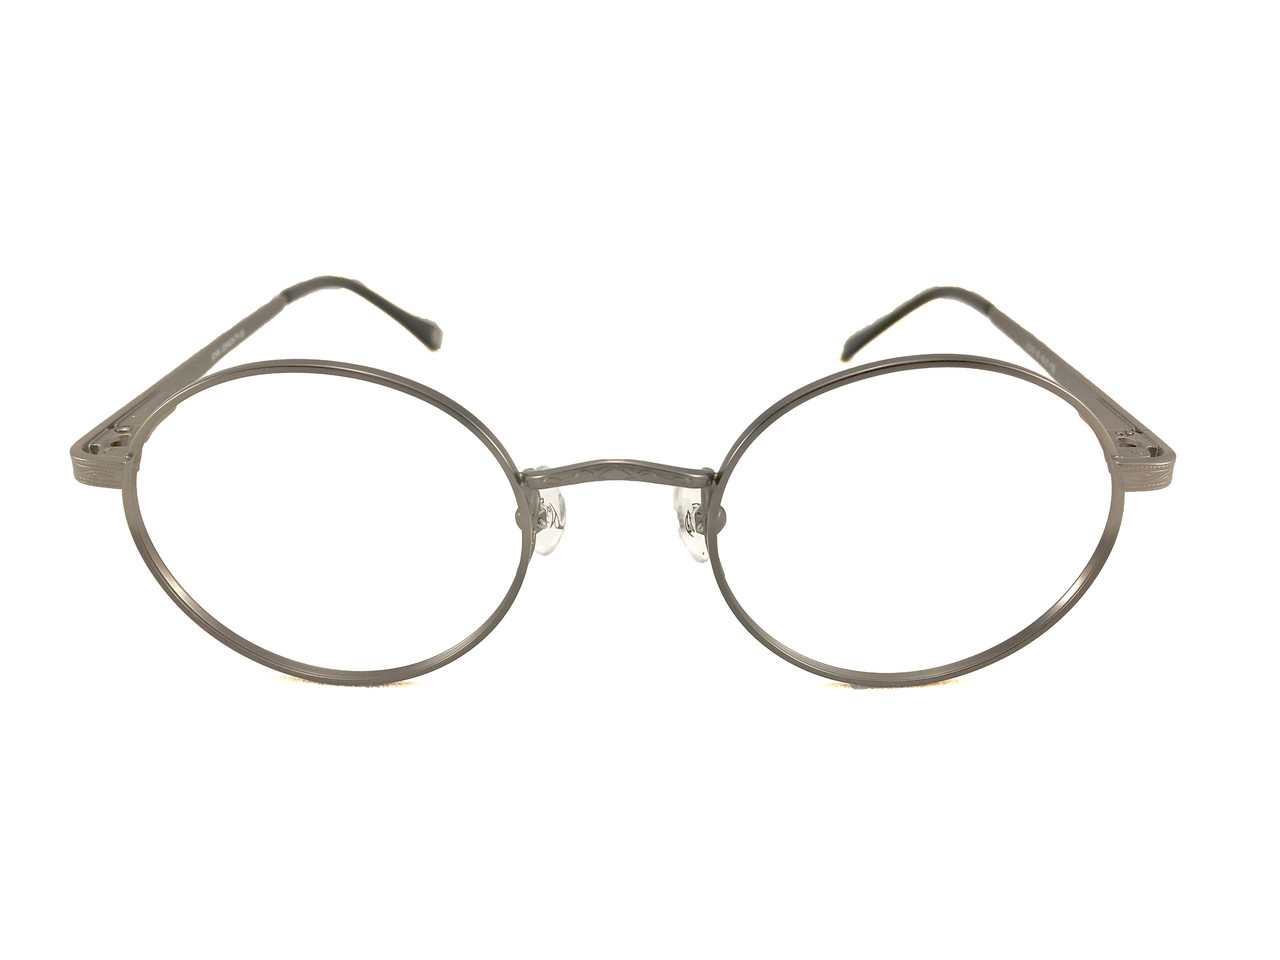 John Lennon JL 310 Mens Eyeglass Frames - Antique Pewter